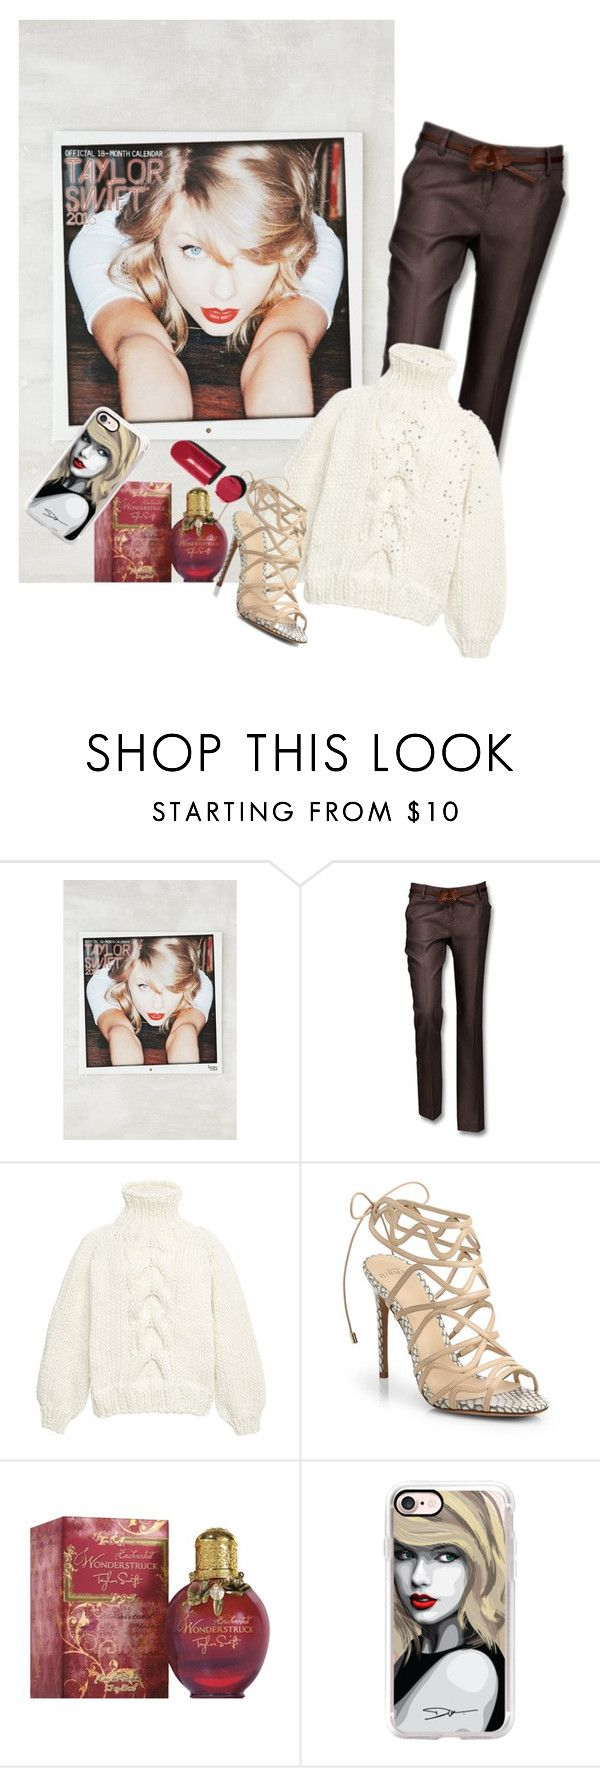 """""""Snow Swift"""" by lseed87 ❤ liked on Polyvore featuring WALL, I Love Mr. Mittens, Alexandre Birman, Casetify, Chanel, taylorswift and sweaterweather"""